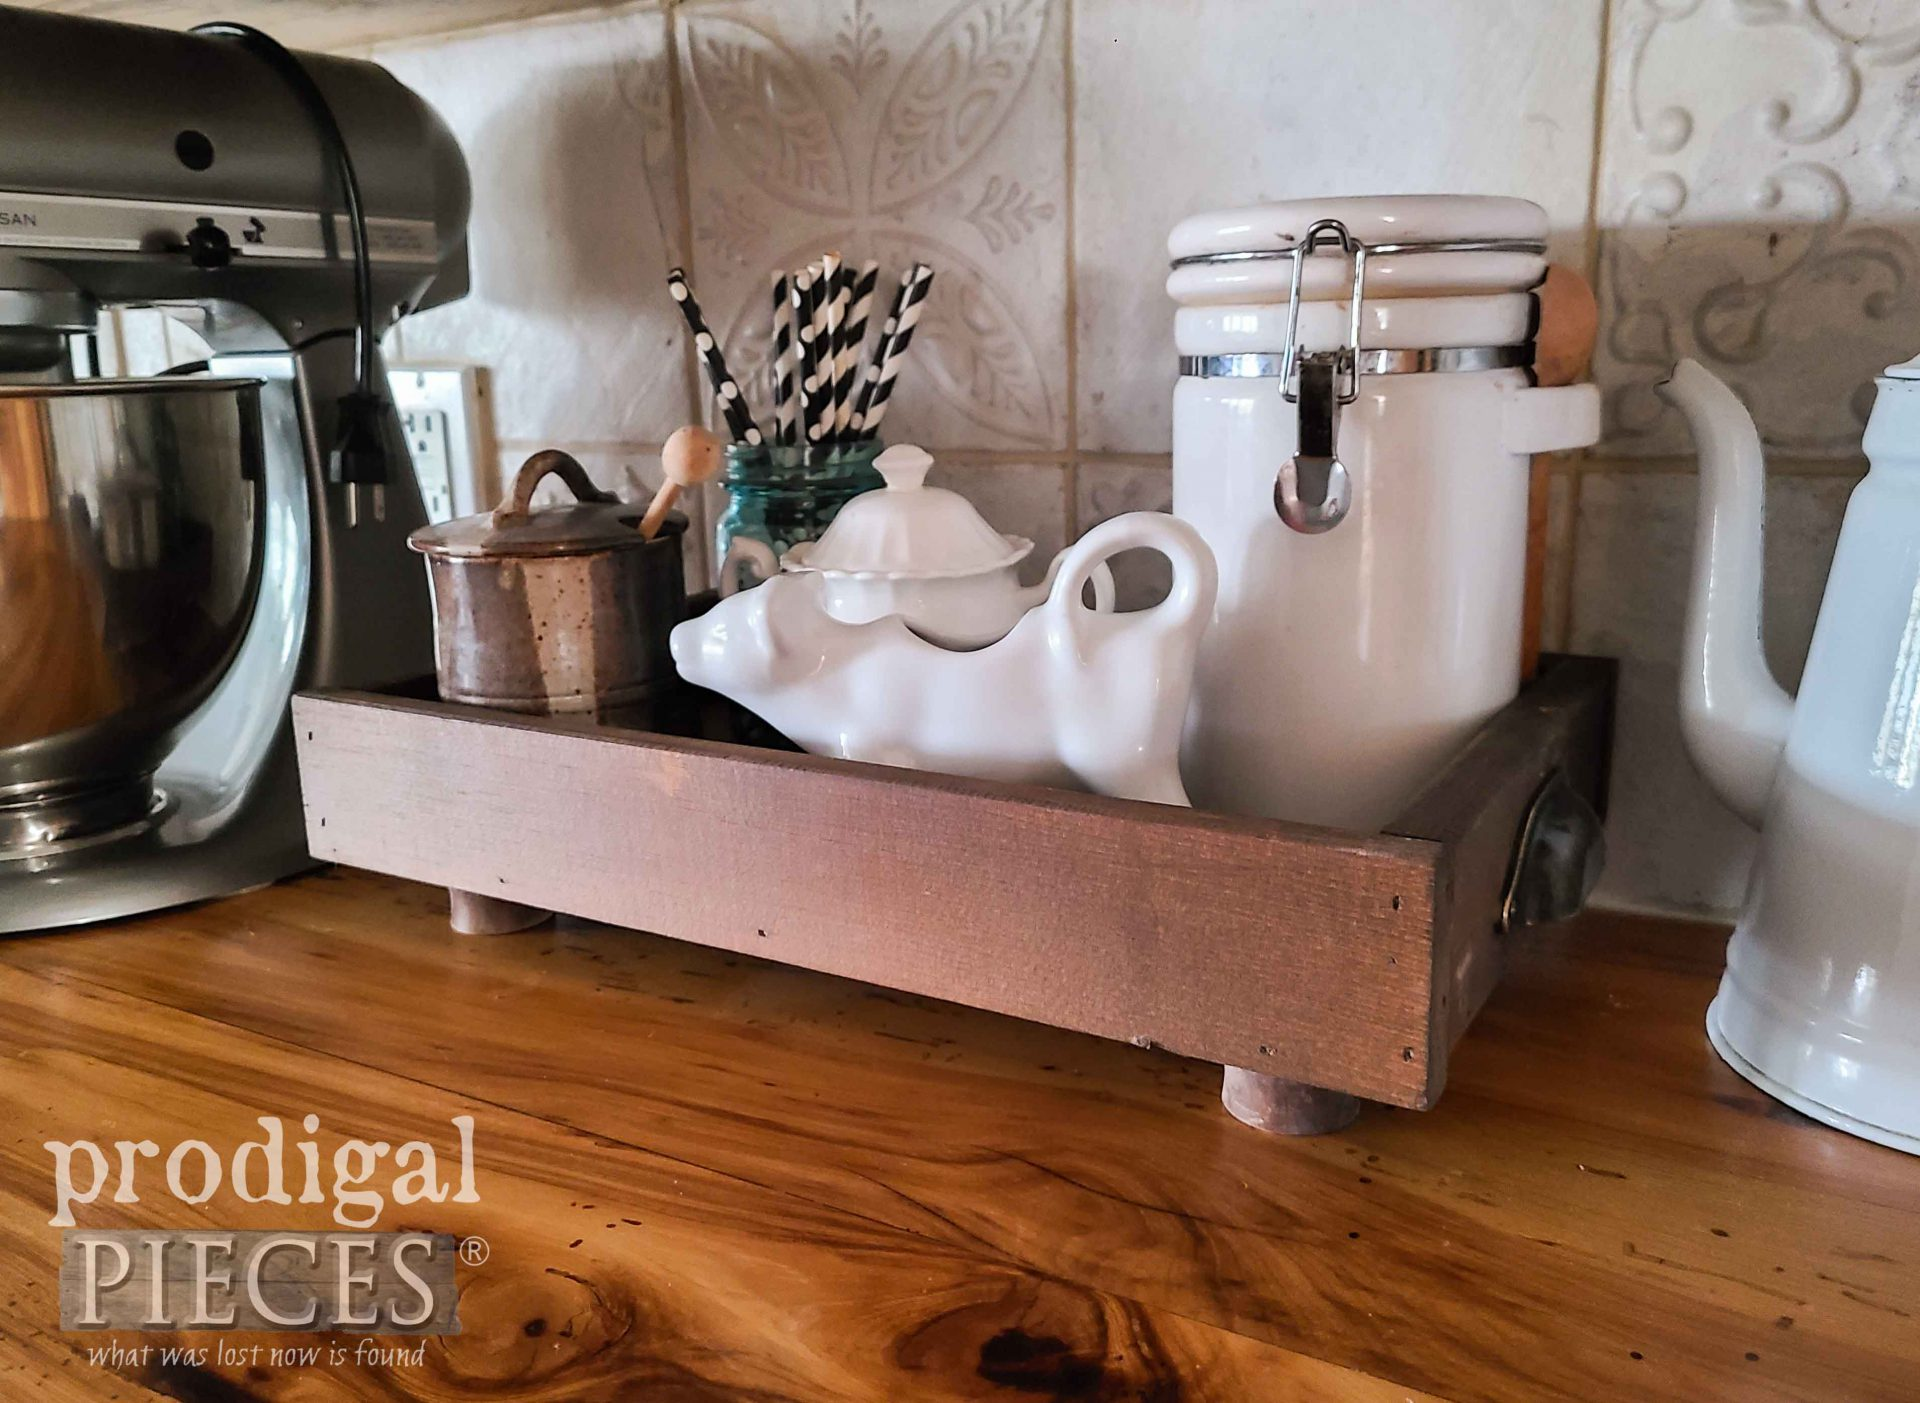 Farmhouse Kitchen DIY Wood Slat Tray from Scrap Wood by Larissa of Prodigal Pieces | prodigalpieces.com #prodigalpieces #farmhouse #diy #home #kitchen